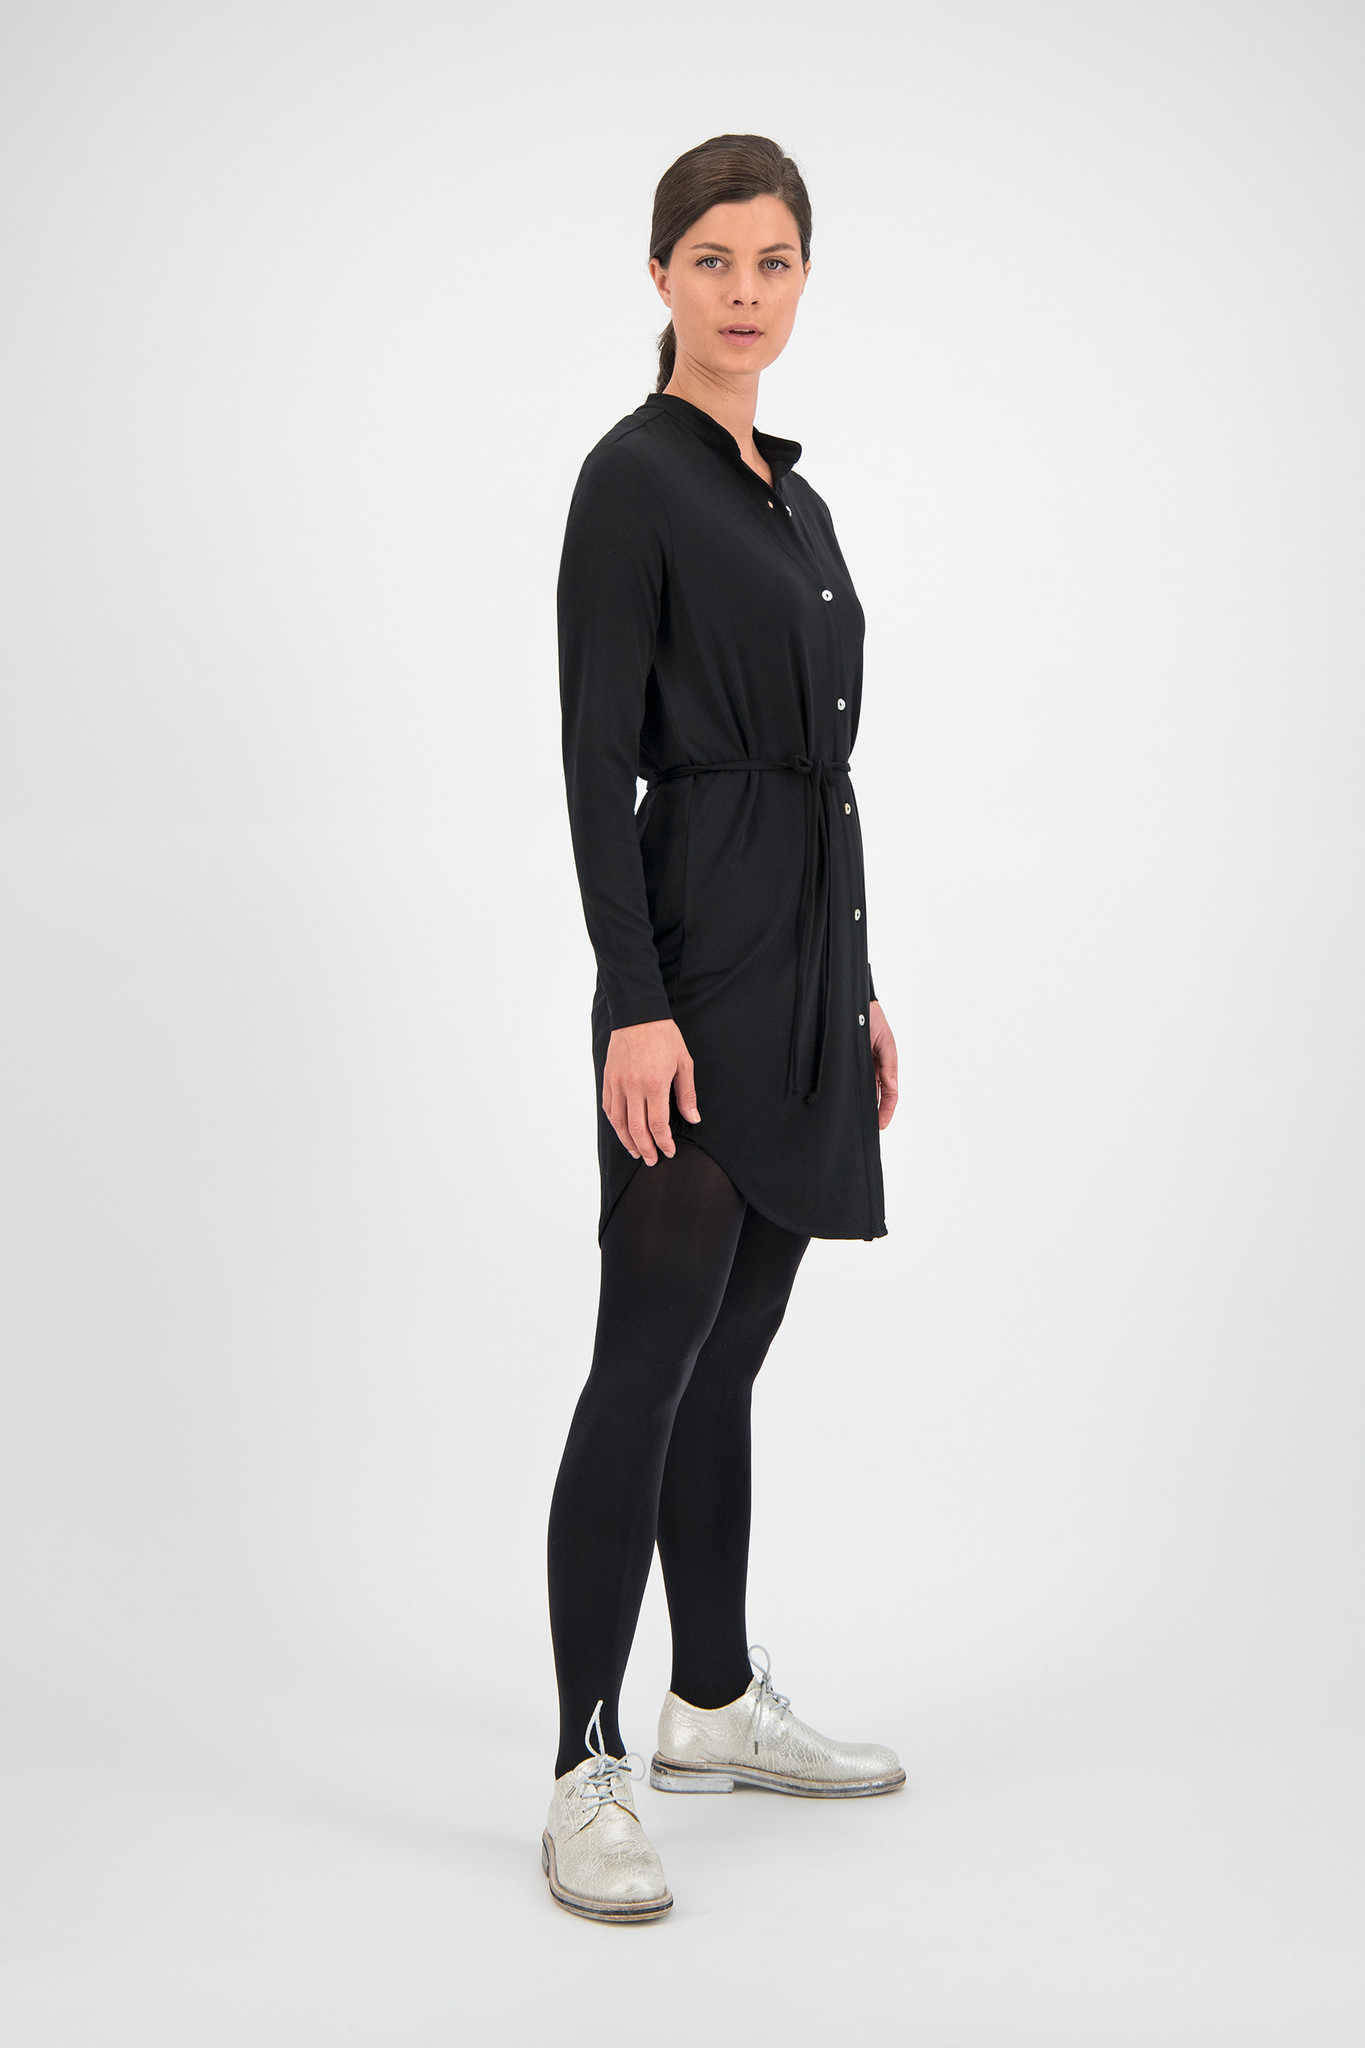 SYLVER New Lyocell Blouse - Black